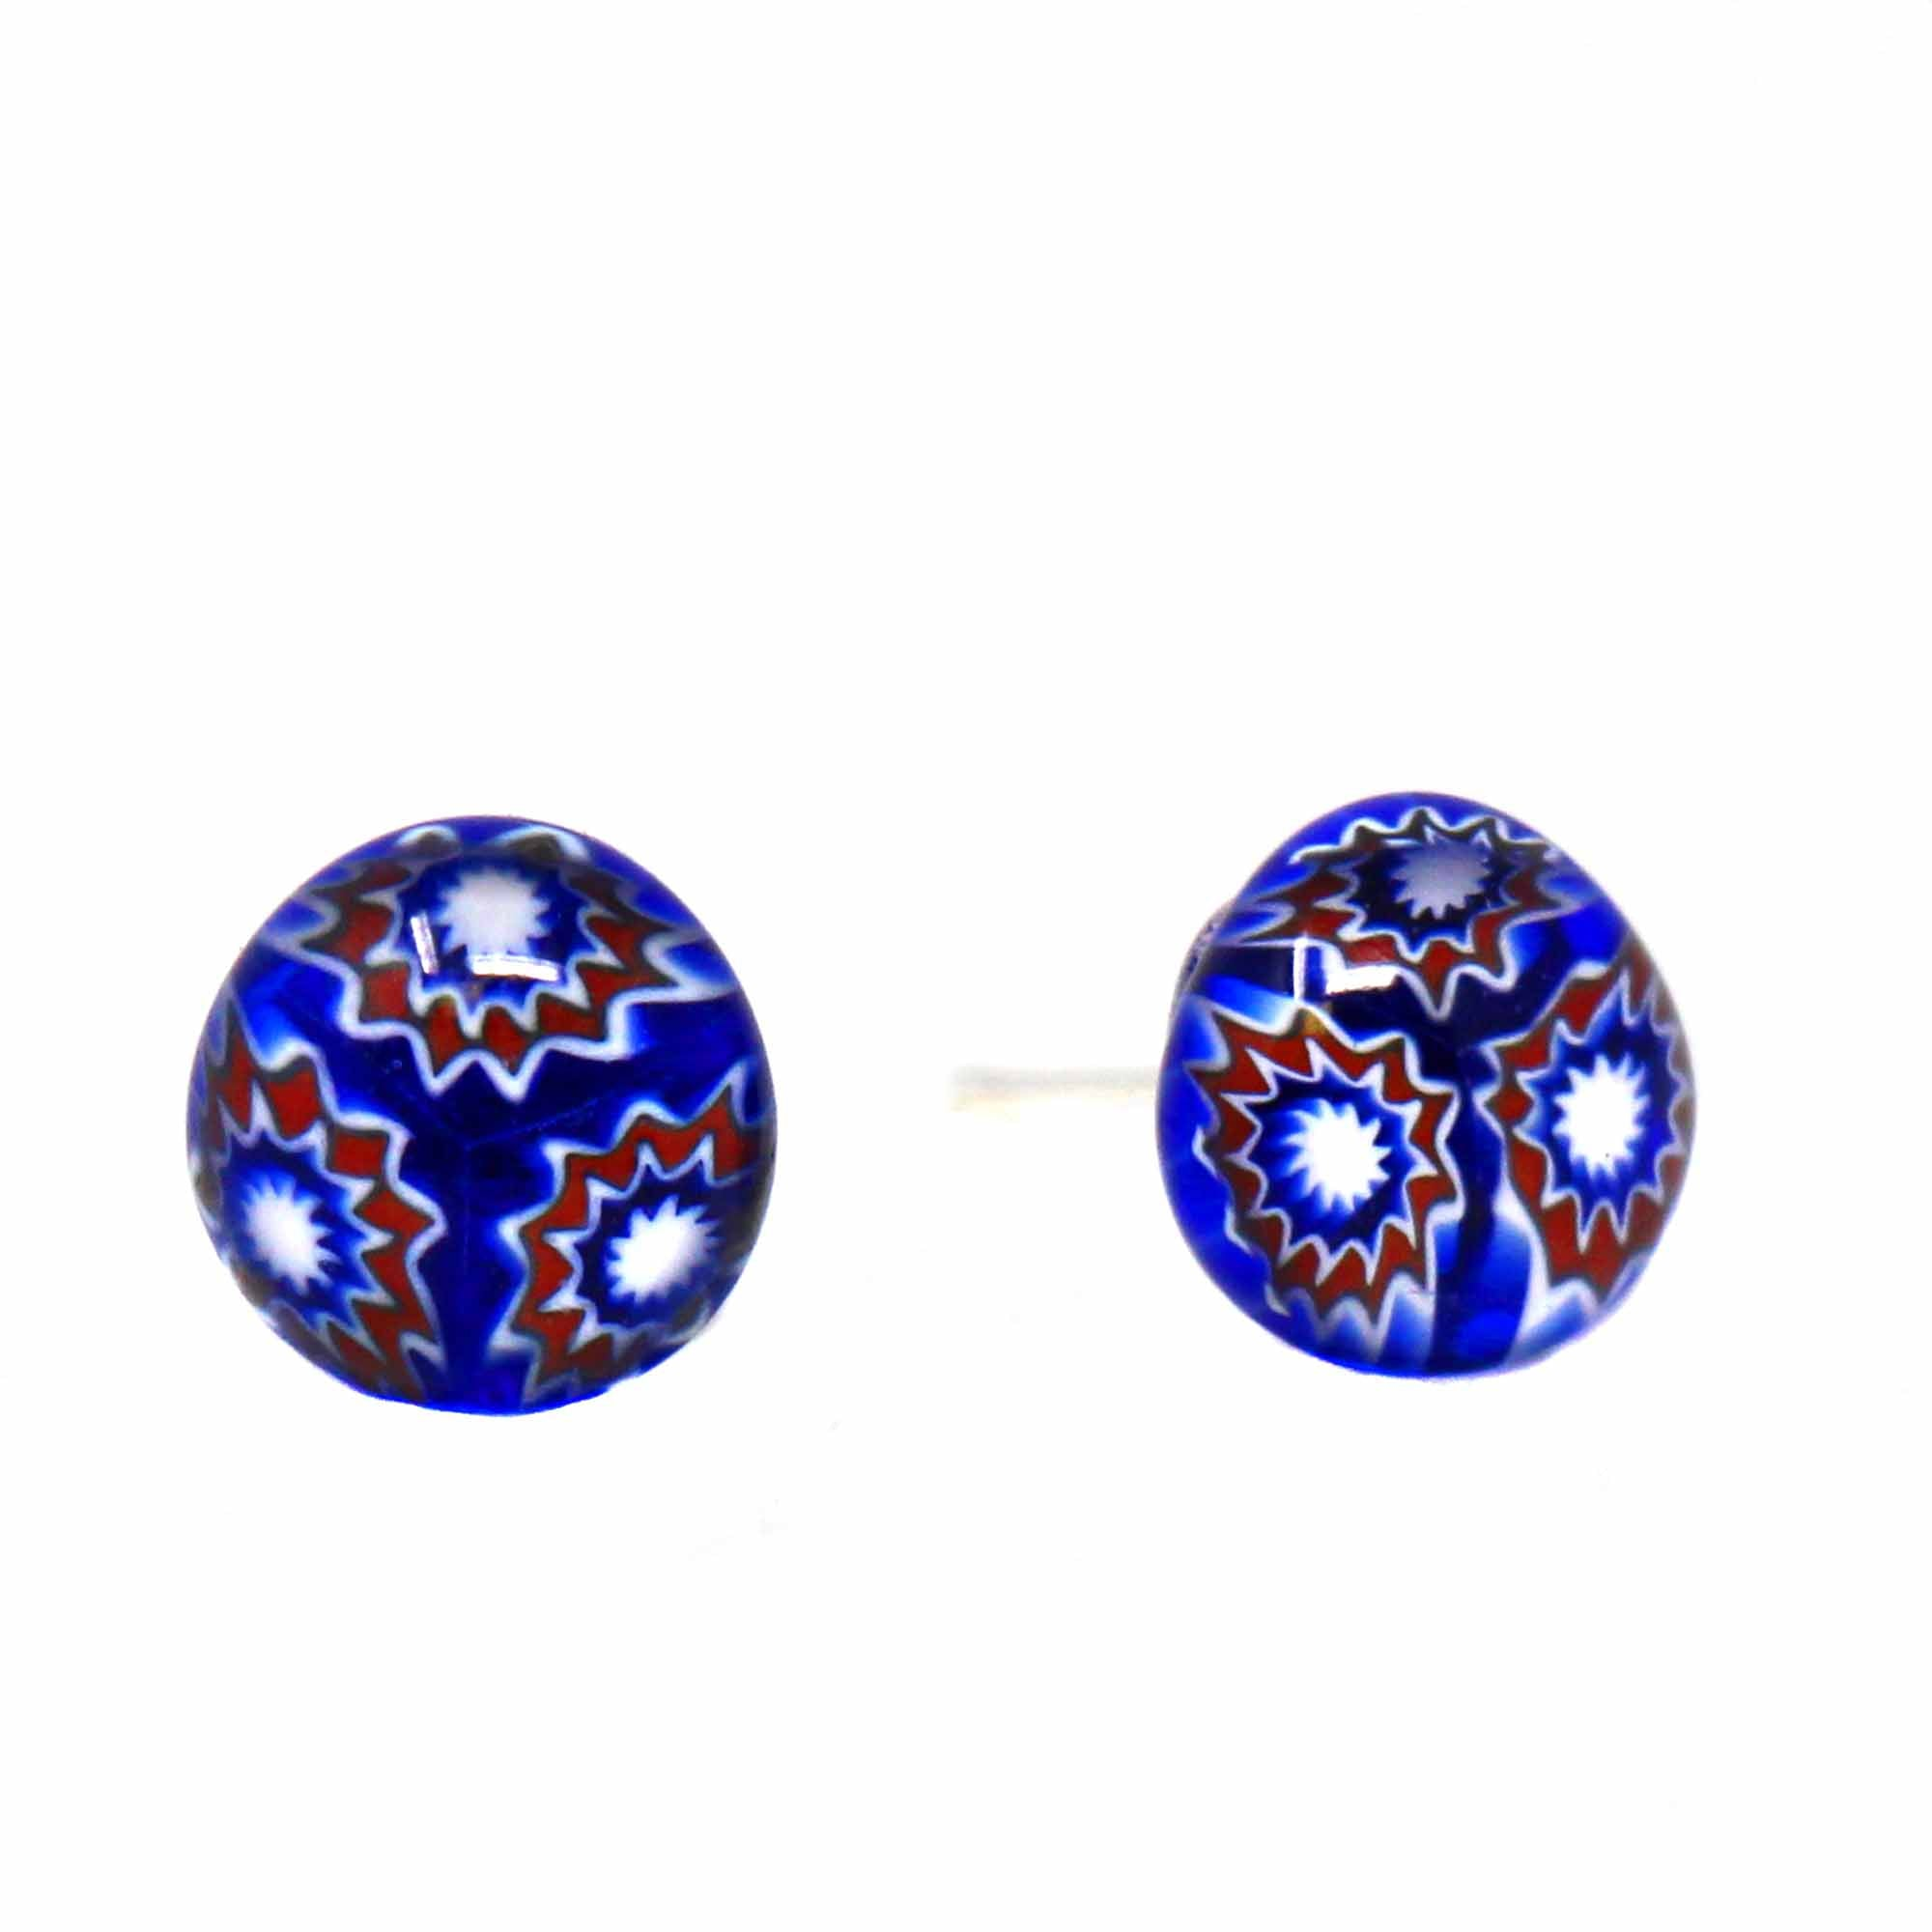 Small Glass Stud Earrings - Blue Flower